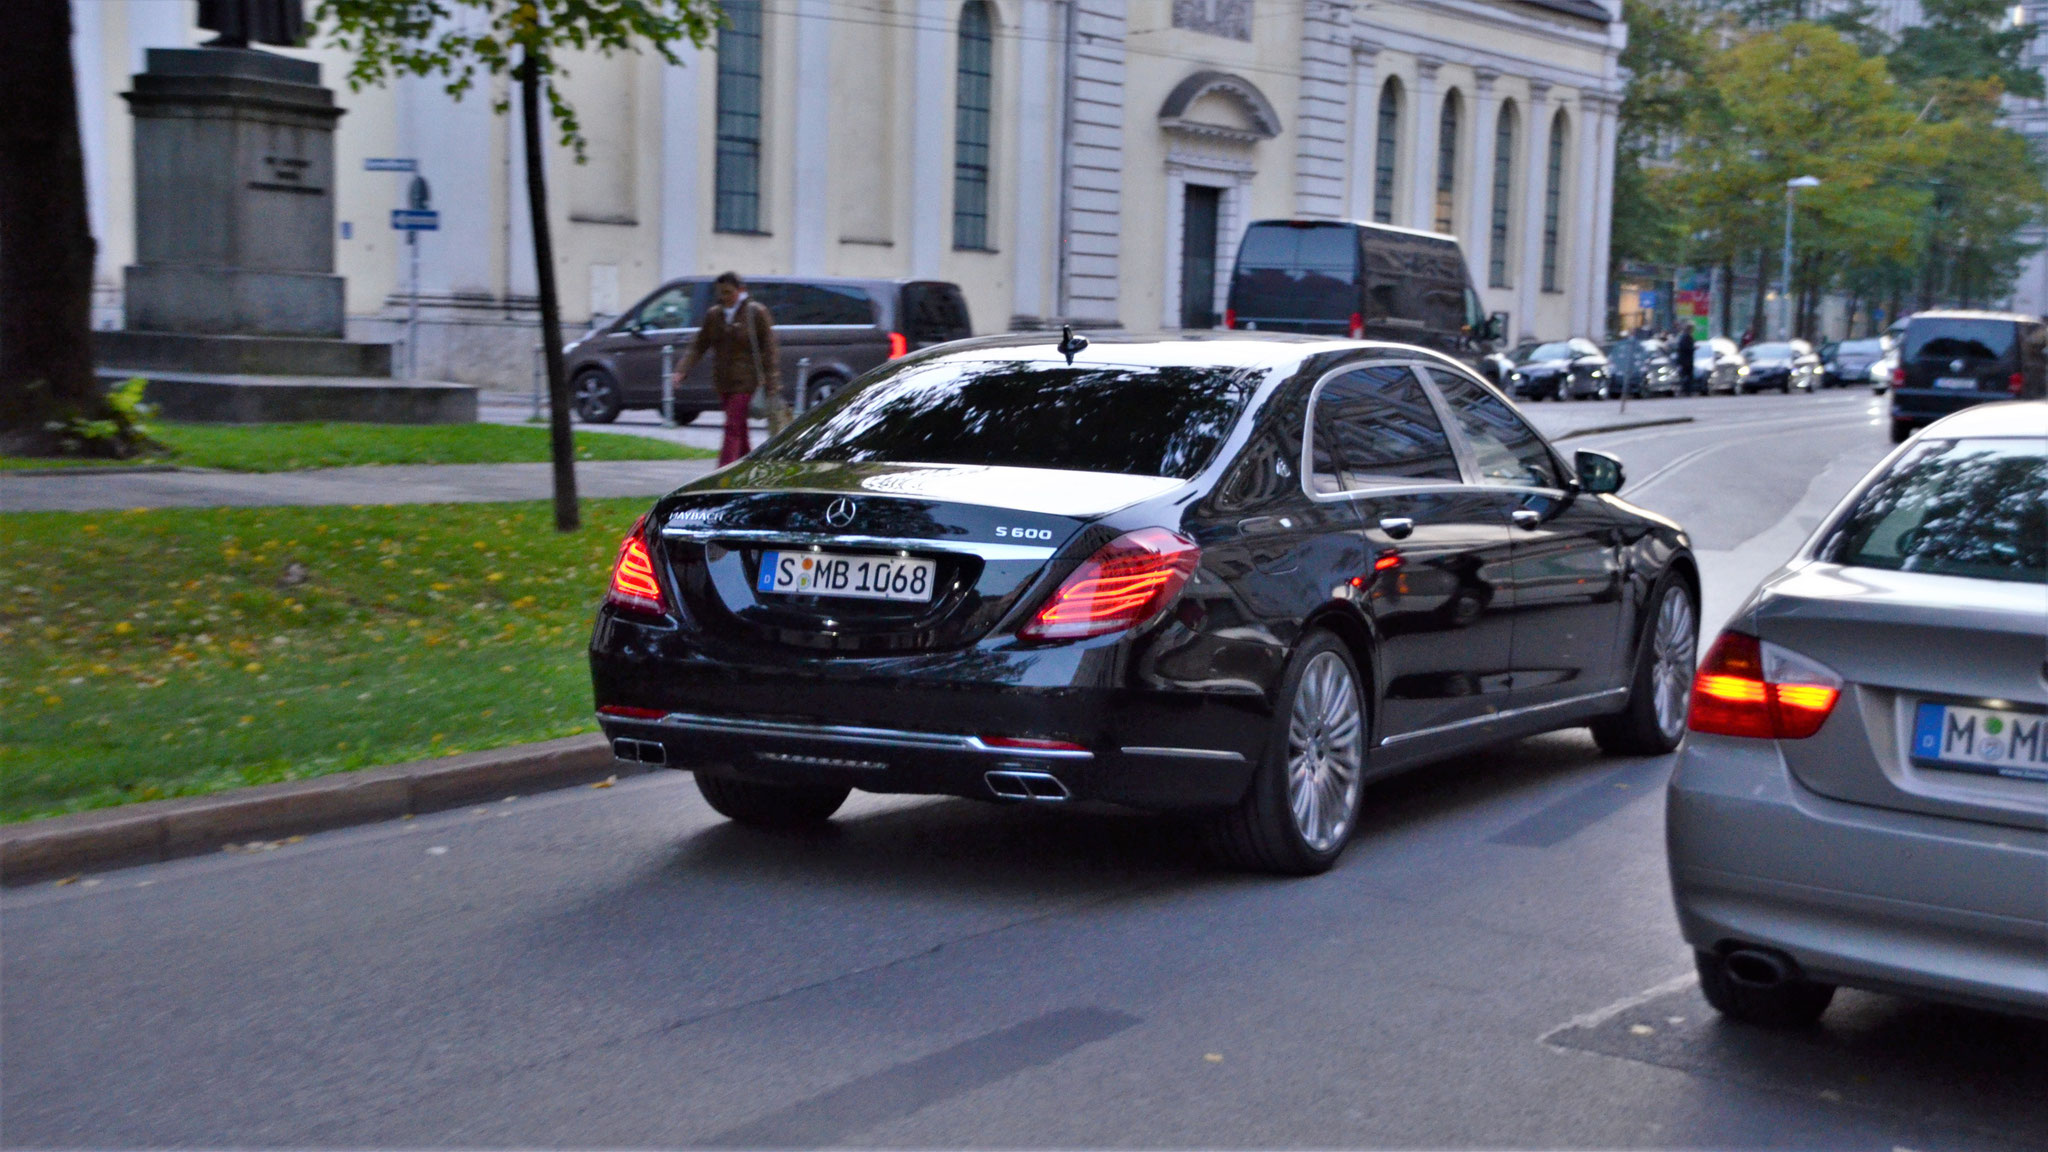 Mercedes Maybach S600 - S-MB-1068